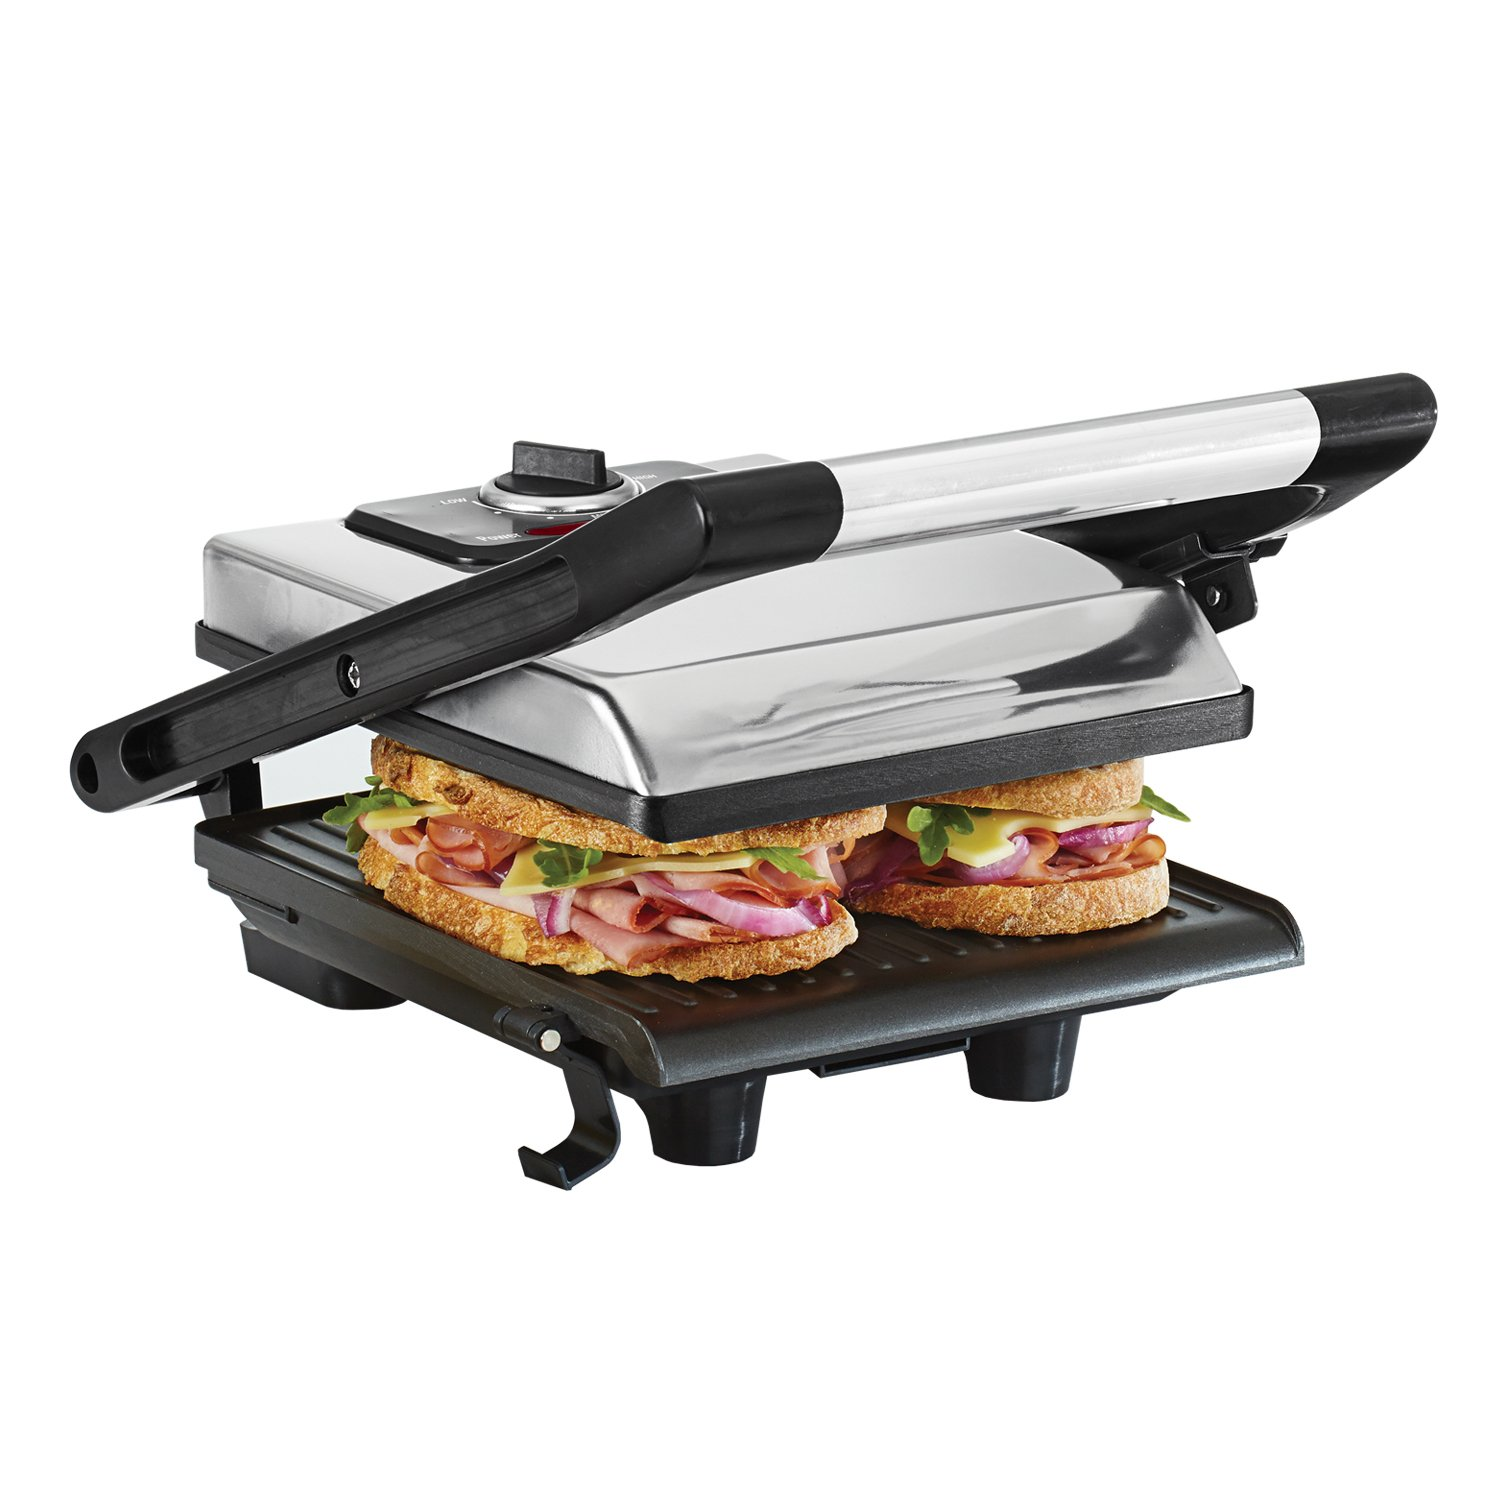 BELLA Electric Panini Press & Sandwich Grill, Polished Stainless Steel (13267) Multifunction Space-Saving Panini Press & Contact Grill with Non-Stick Plates